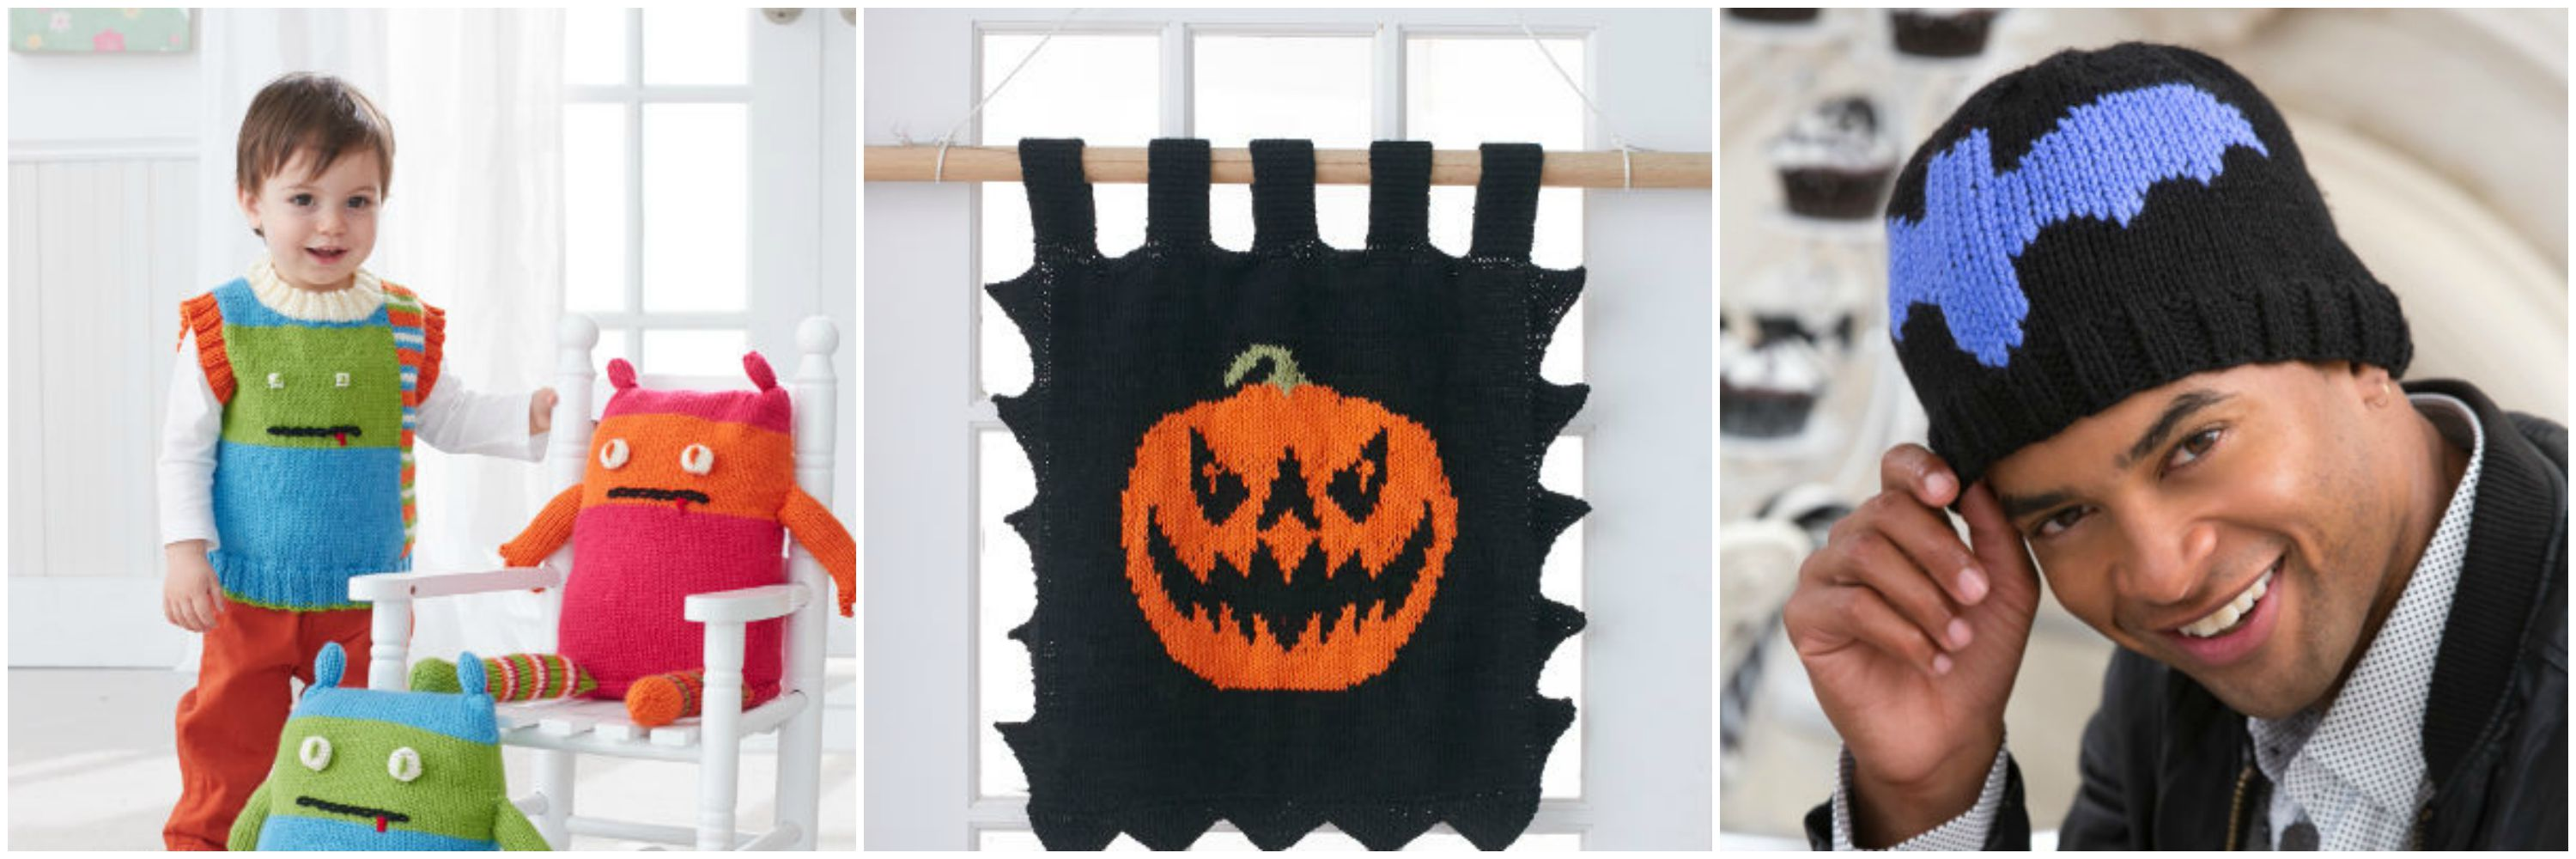 BOO! Our Spookiest Halloween Knitting Patterns - I Like Knitting